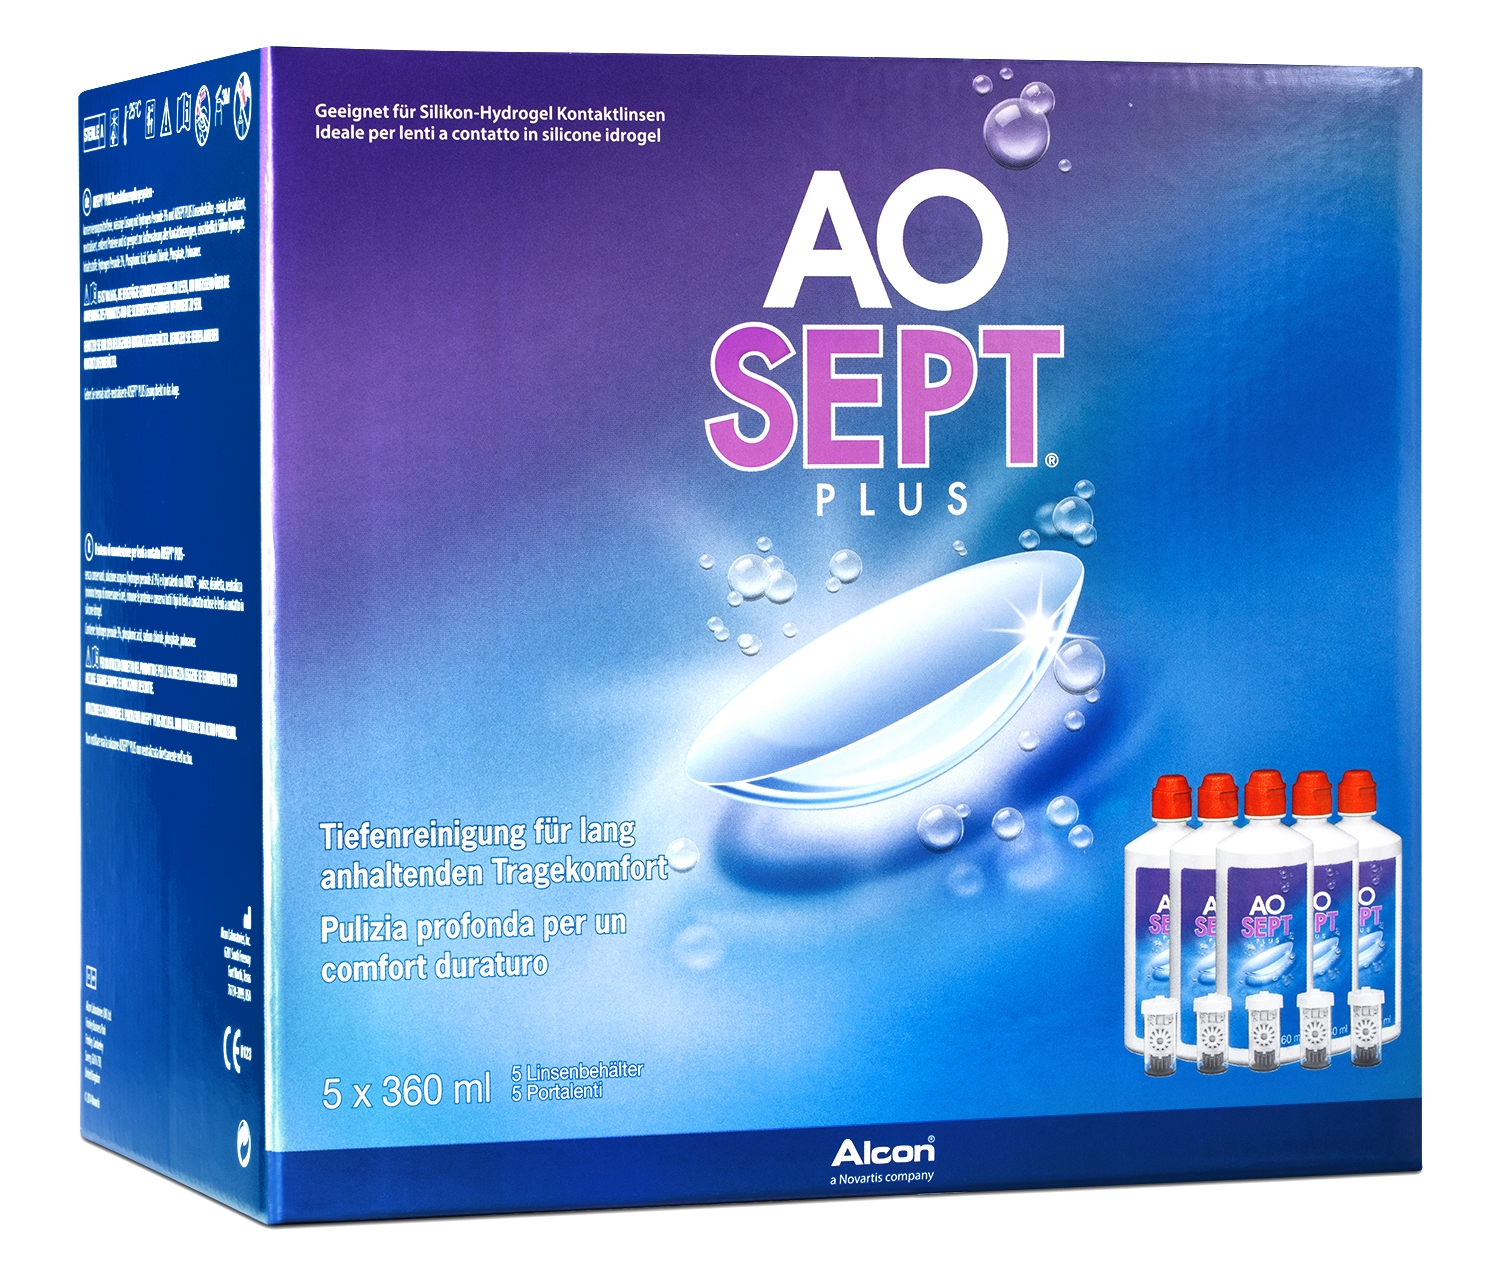 AOSEPT Plus Systempack, Alcon (5 x 360 ml)